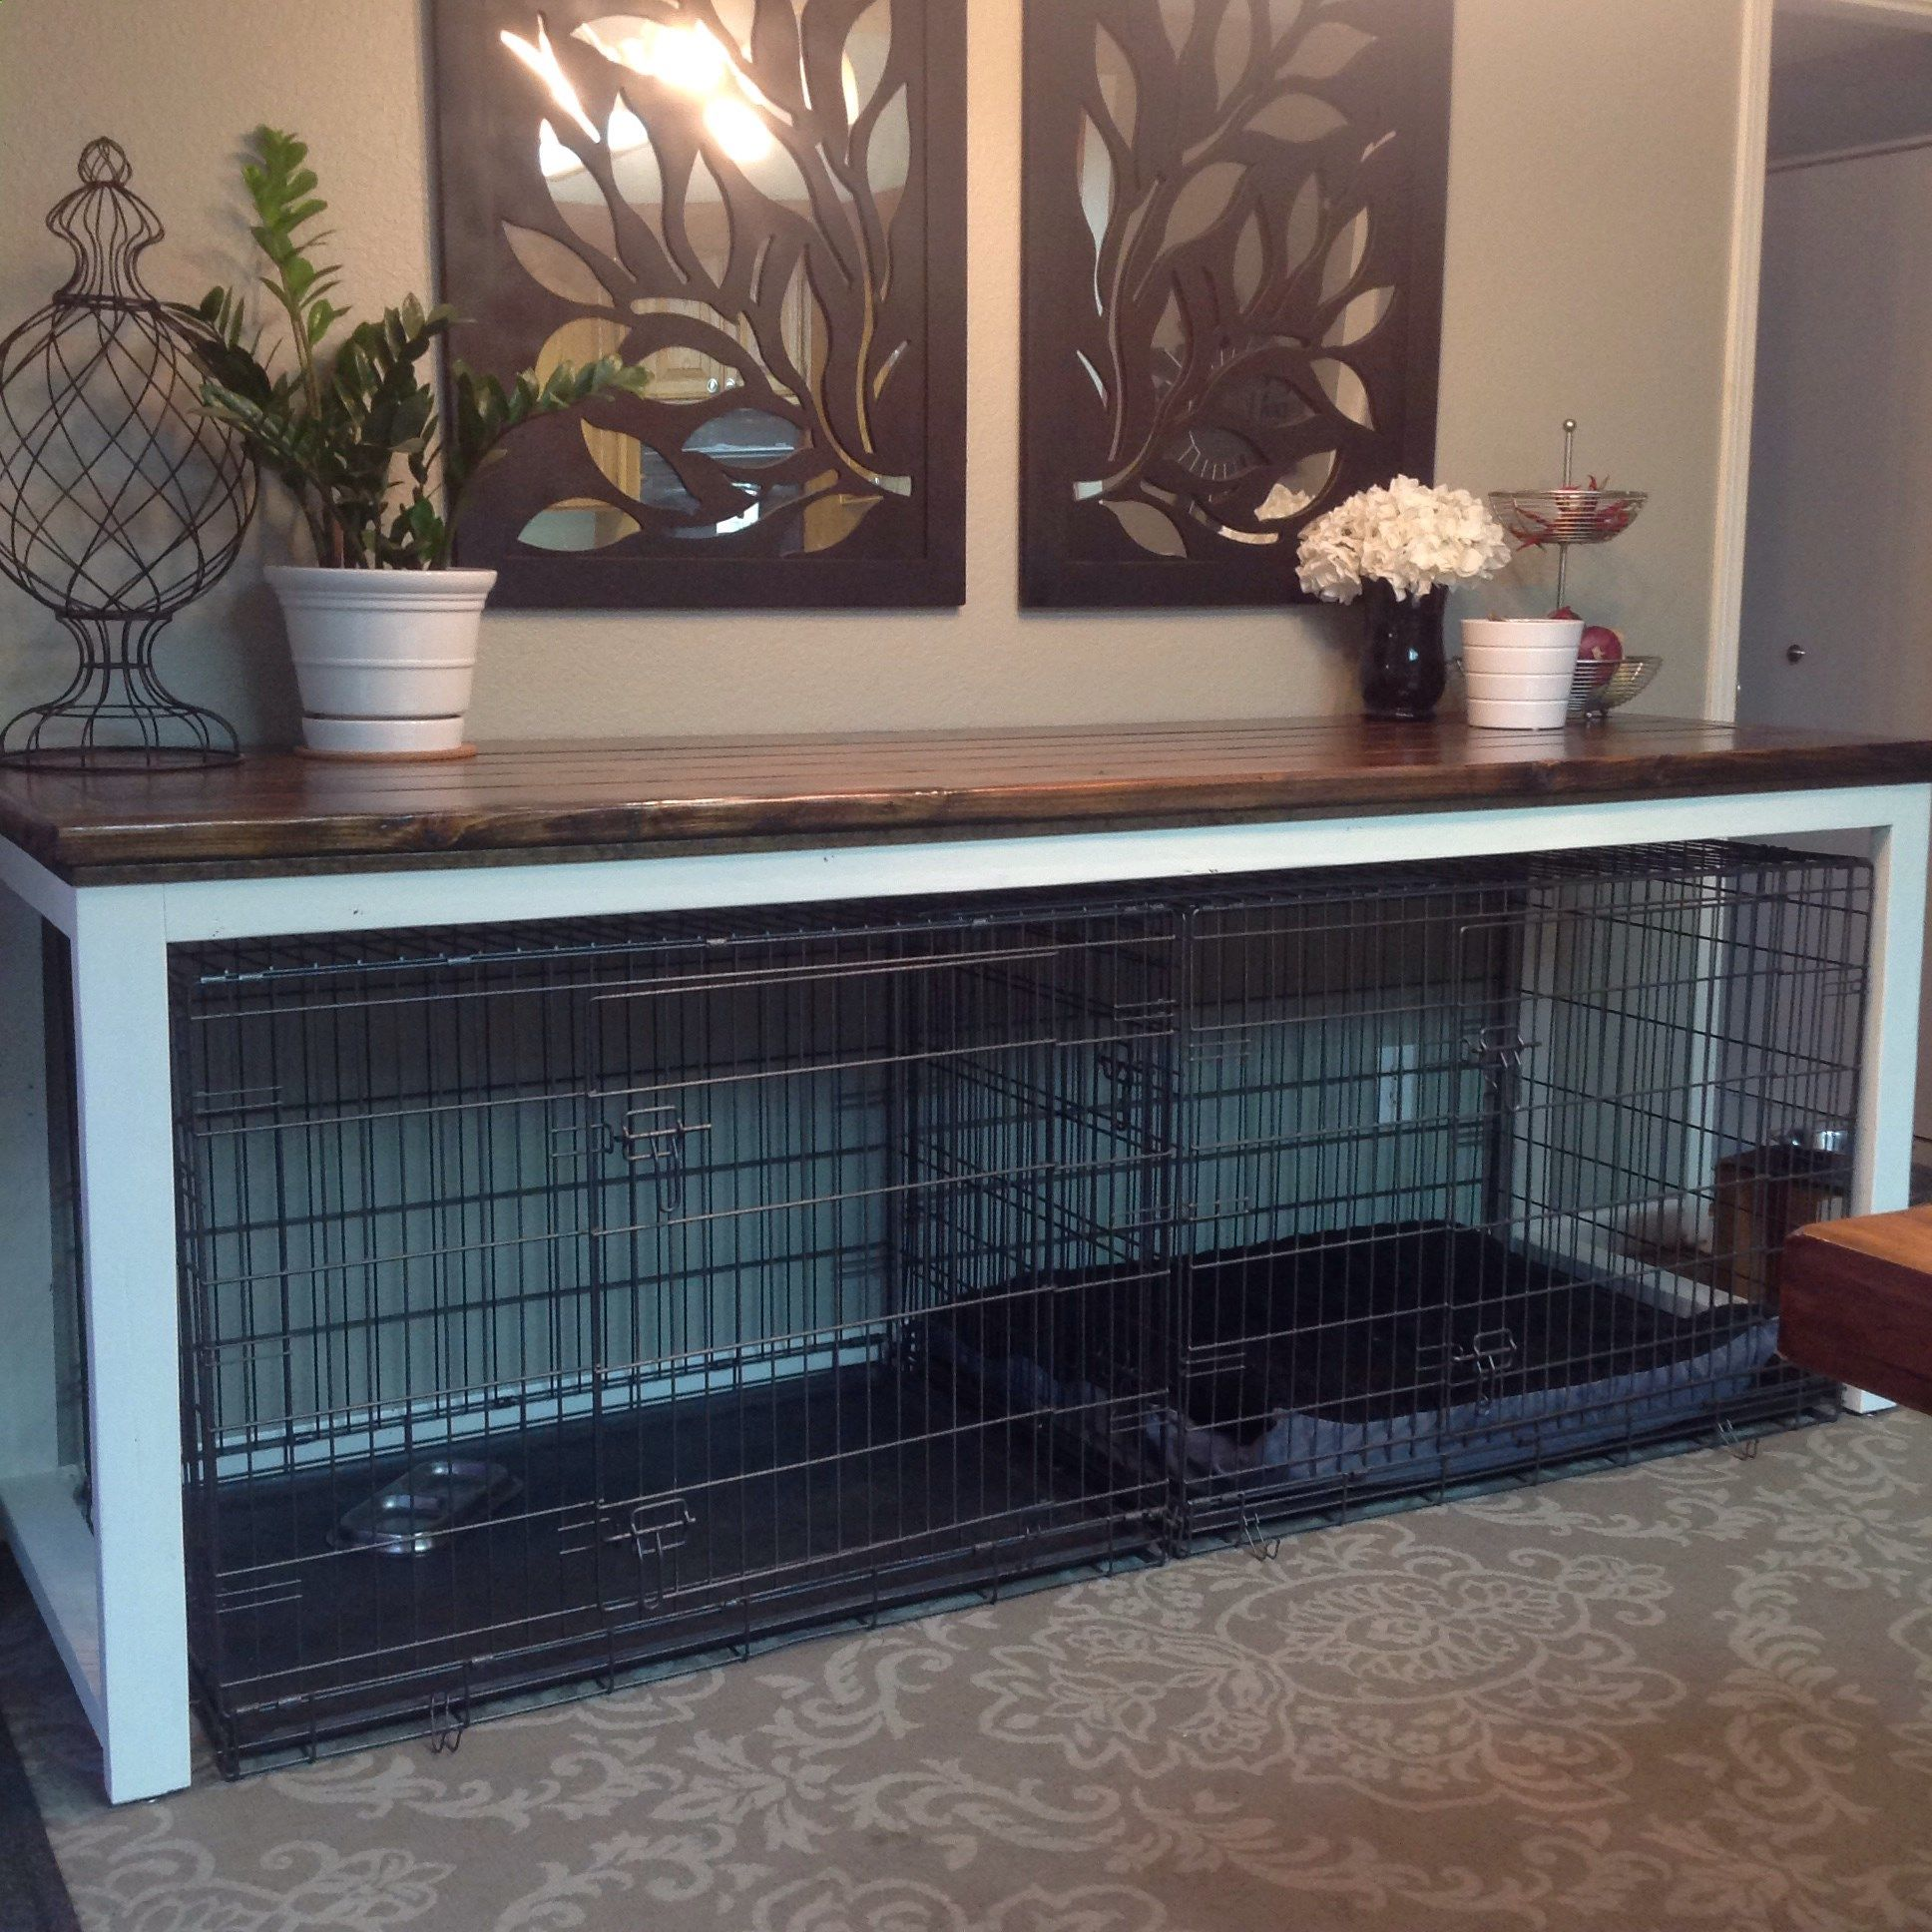 custom built buffet table to fit over our dog crates destinydesigns bunny crate idea orvis dog furniture n15 dog